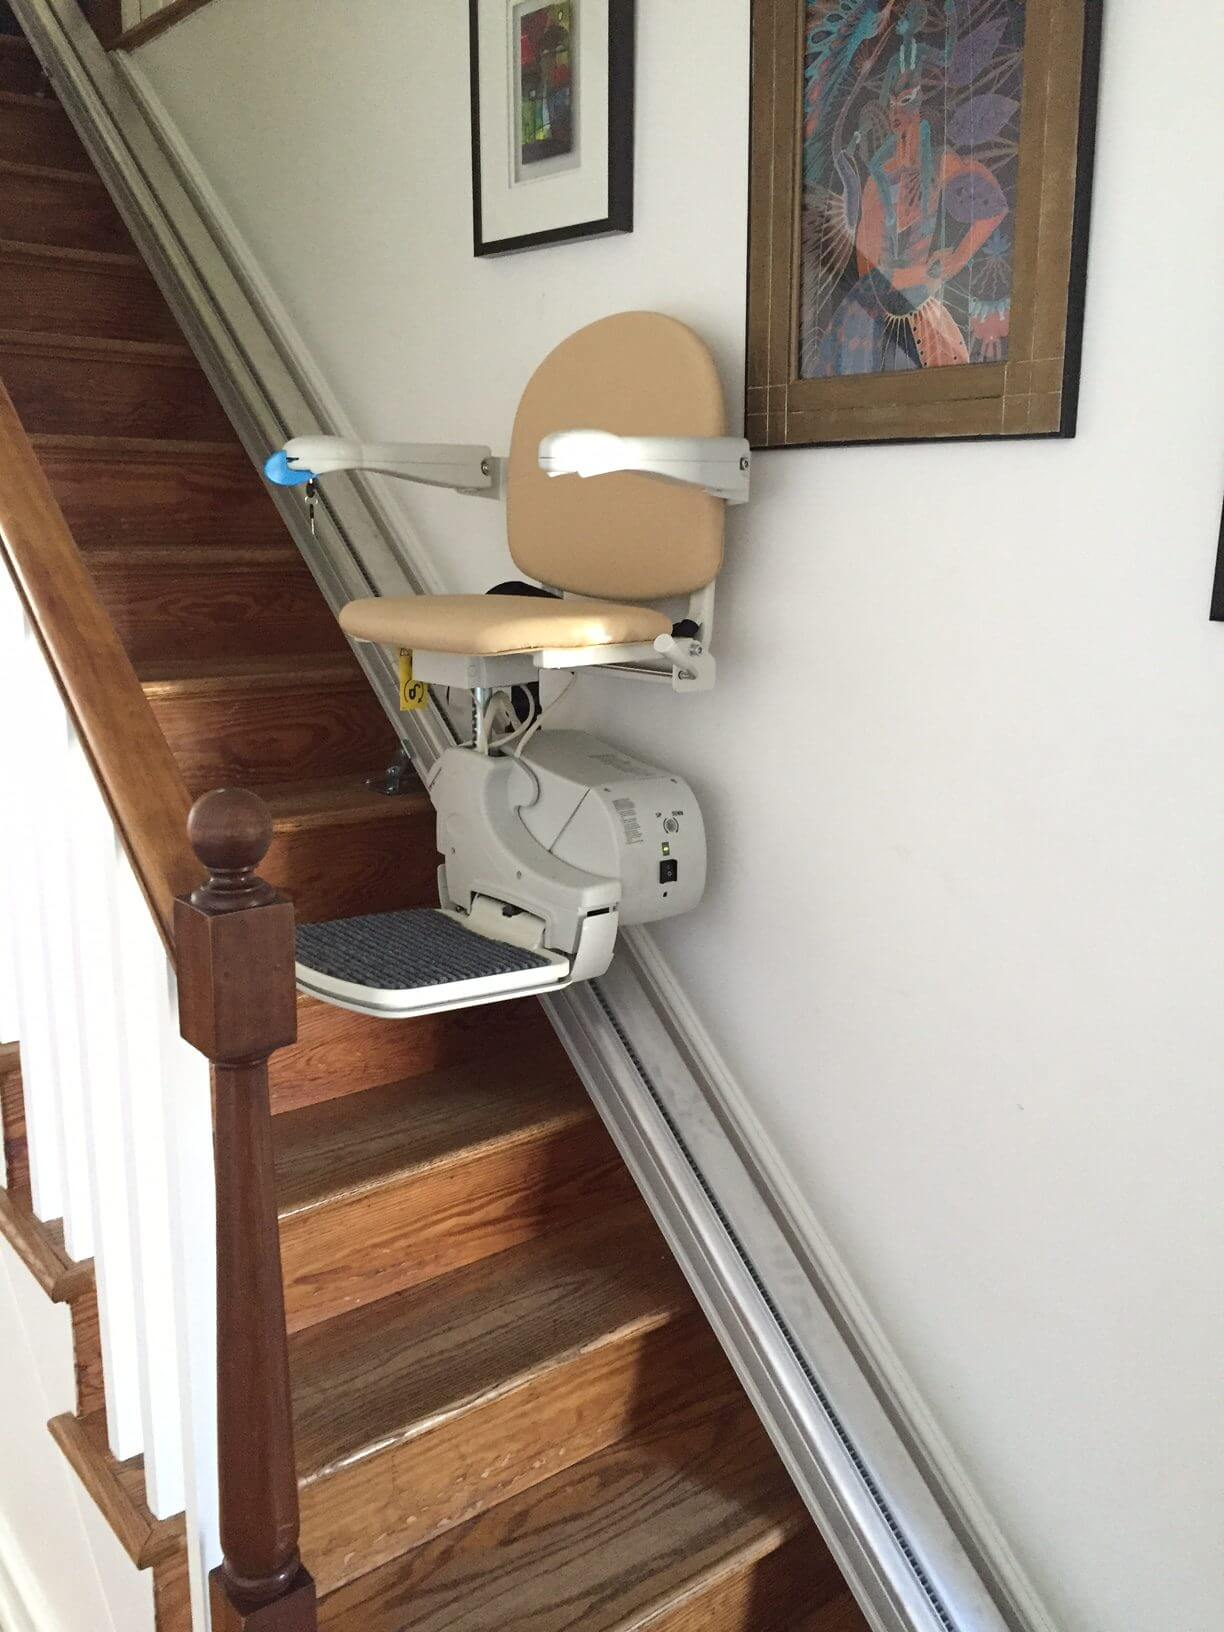 Stair Lift Chair & Stair Lift for Your Home | Chair Lift for Stairs | Chair for your Stairs